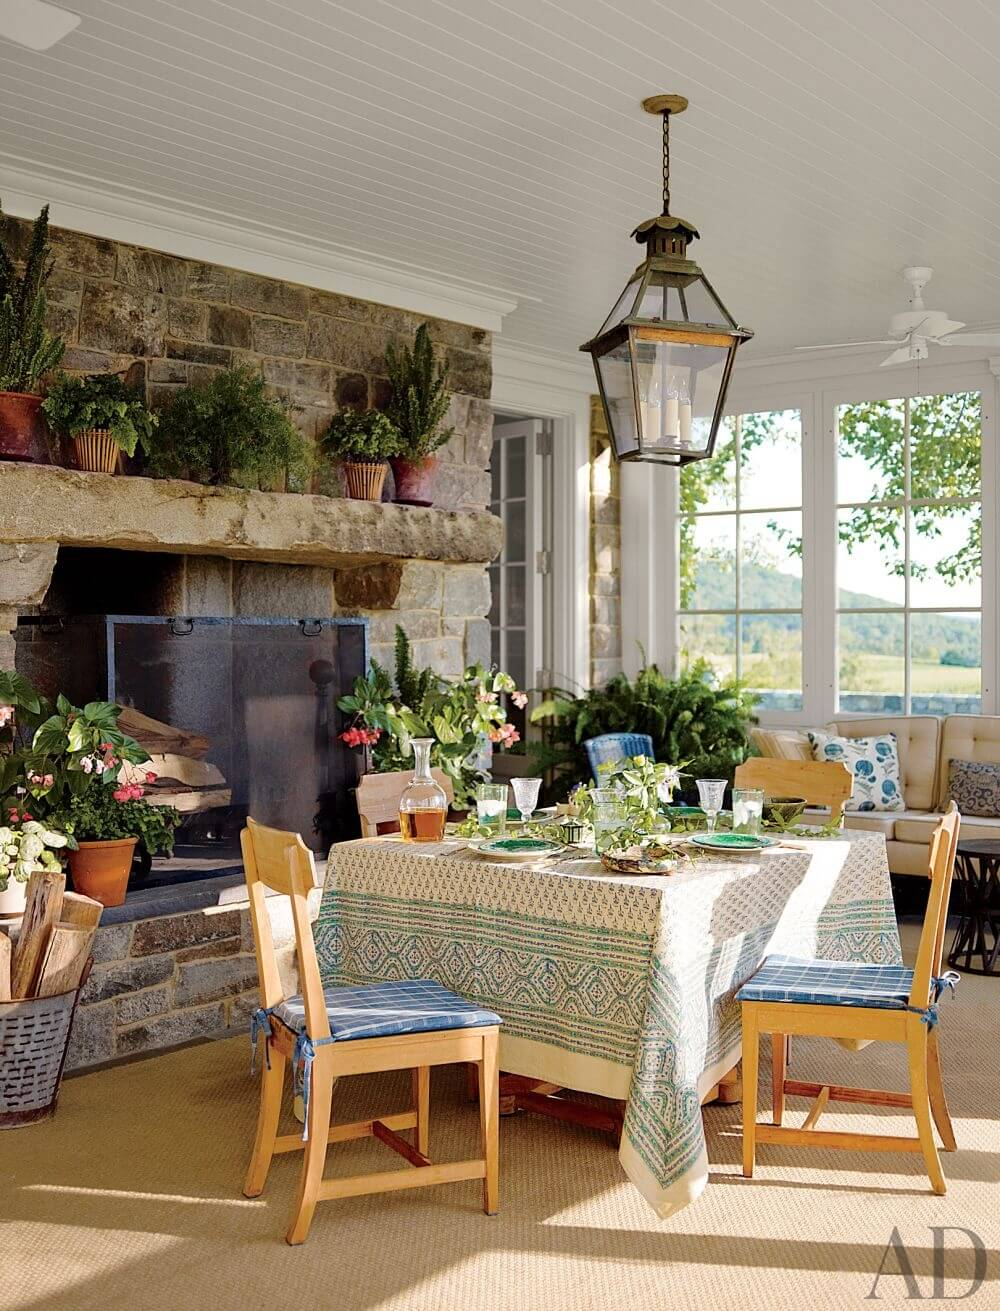 8 farmhouse themed dining room design ideas https for Farmhouse dining room ideas